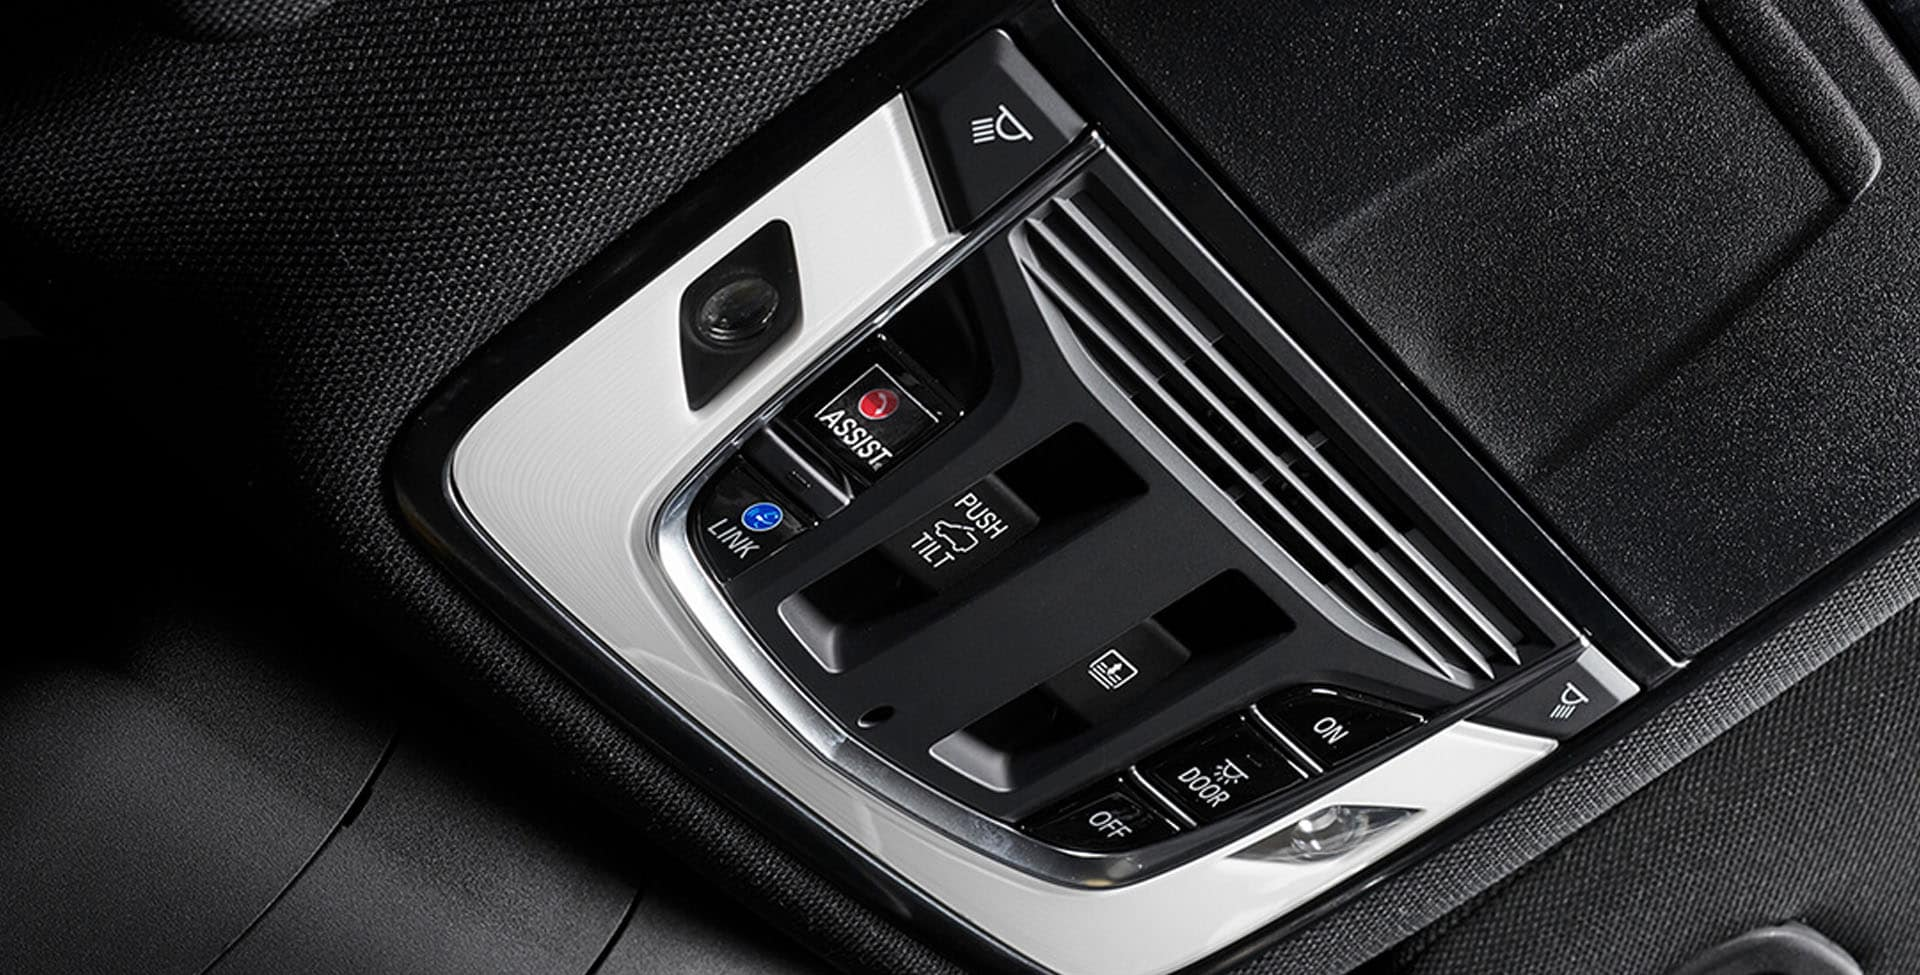 Buttons in the RDX